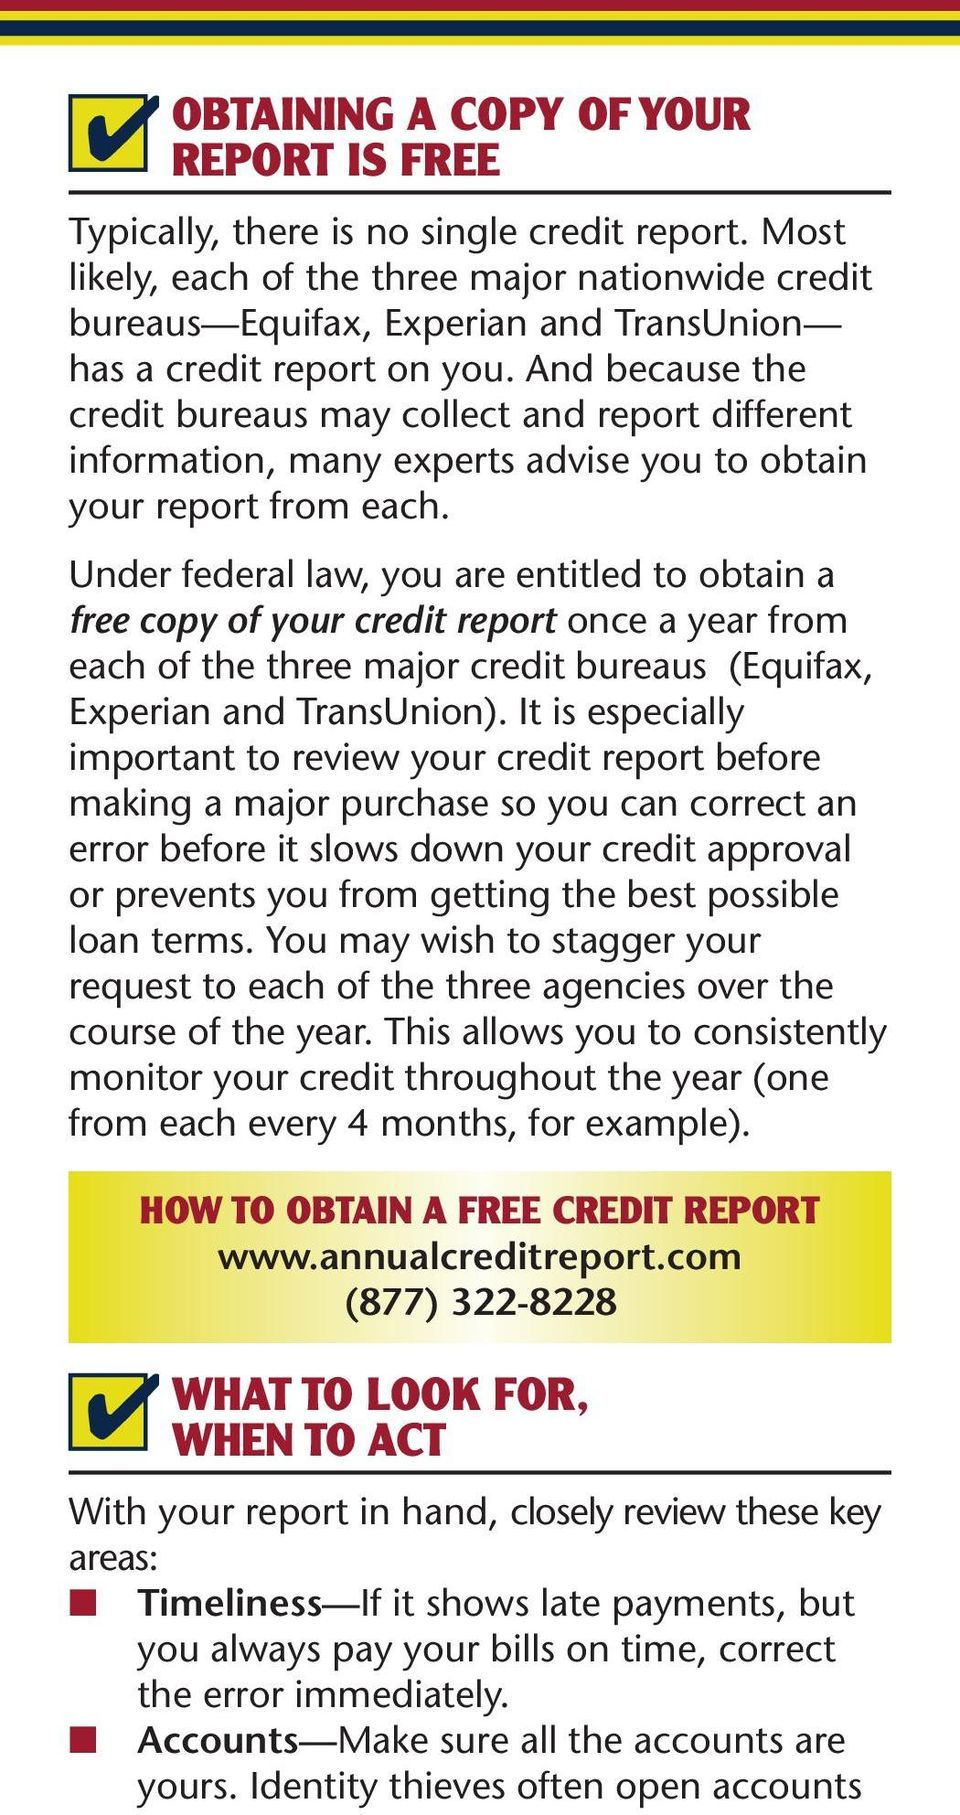 And because the credit bureaus may collect and report different information, many experts advise you to obtain your report from each.